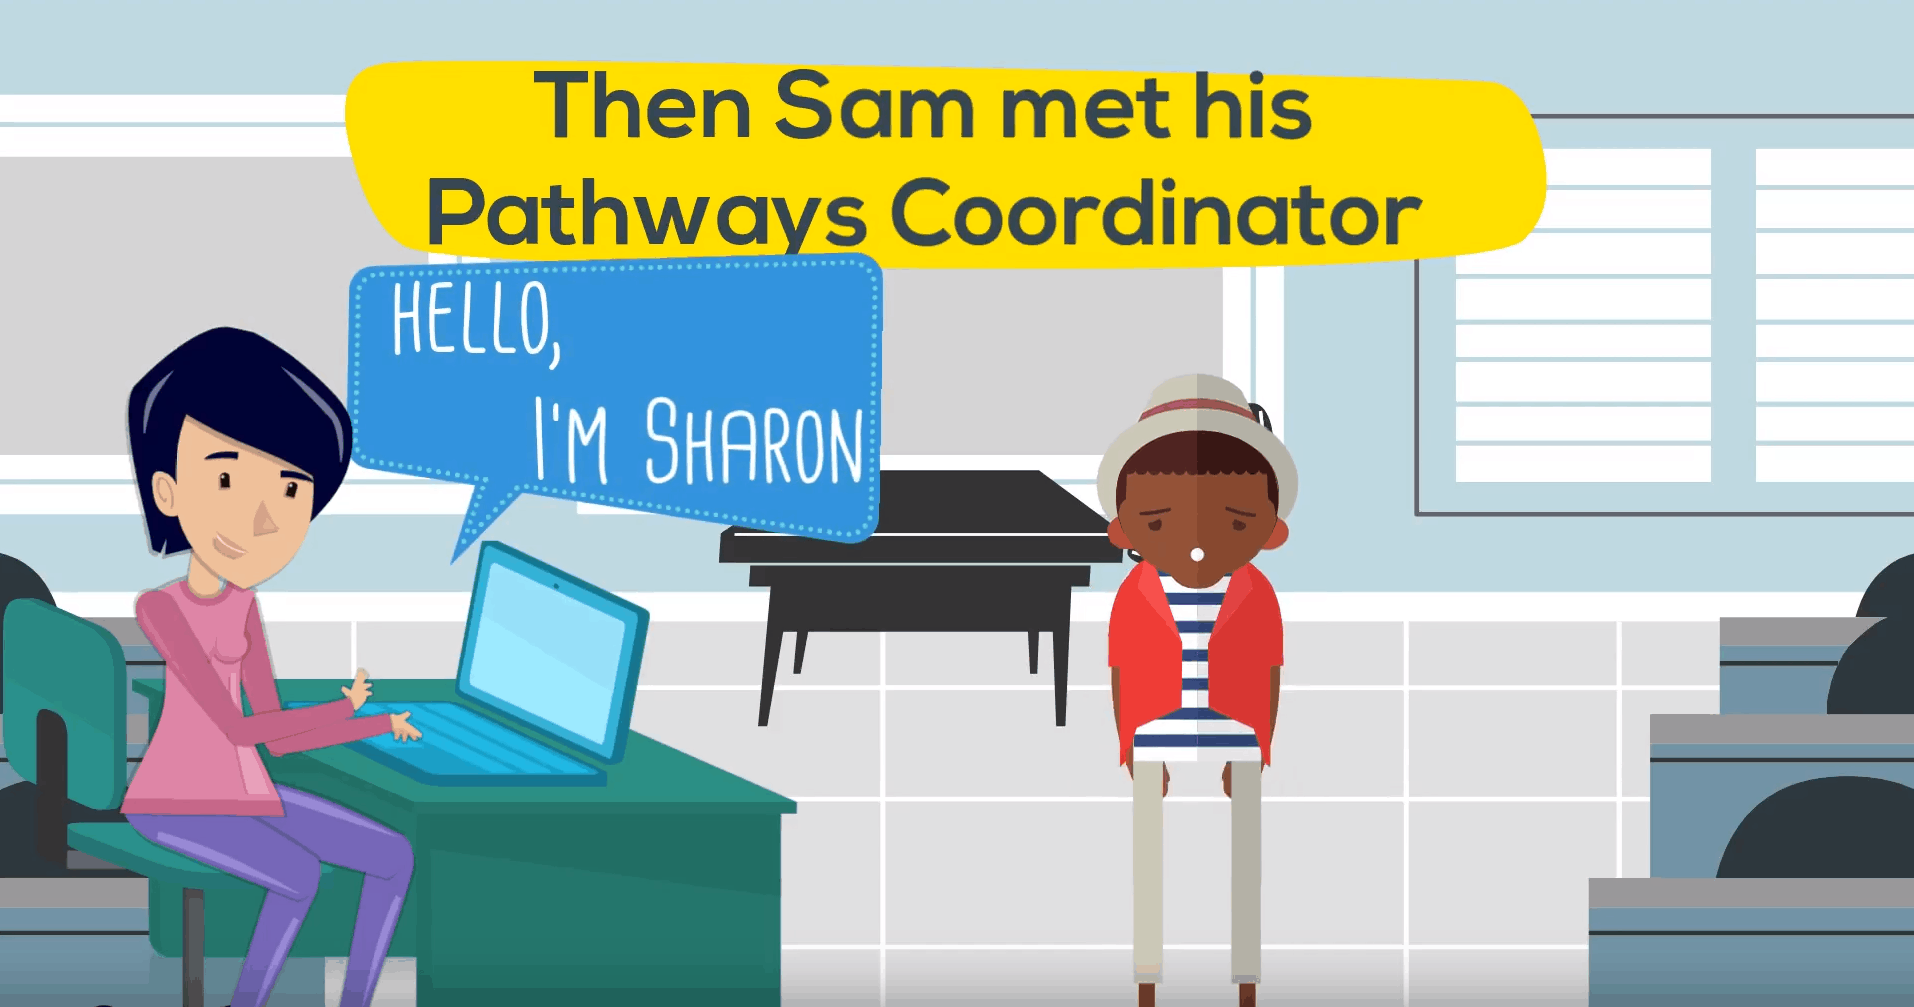 Illustration of young person meeting their pathway coordinator.